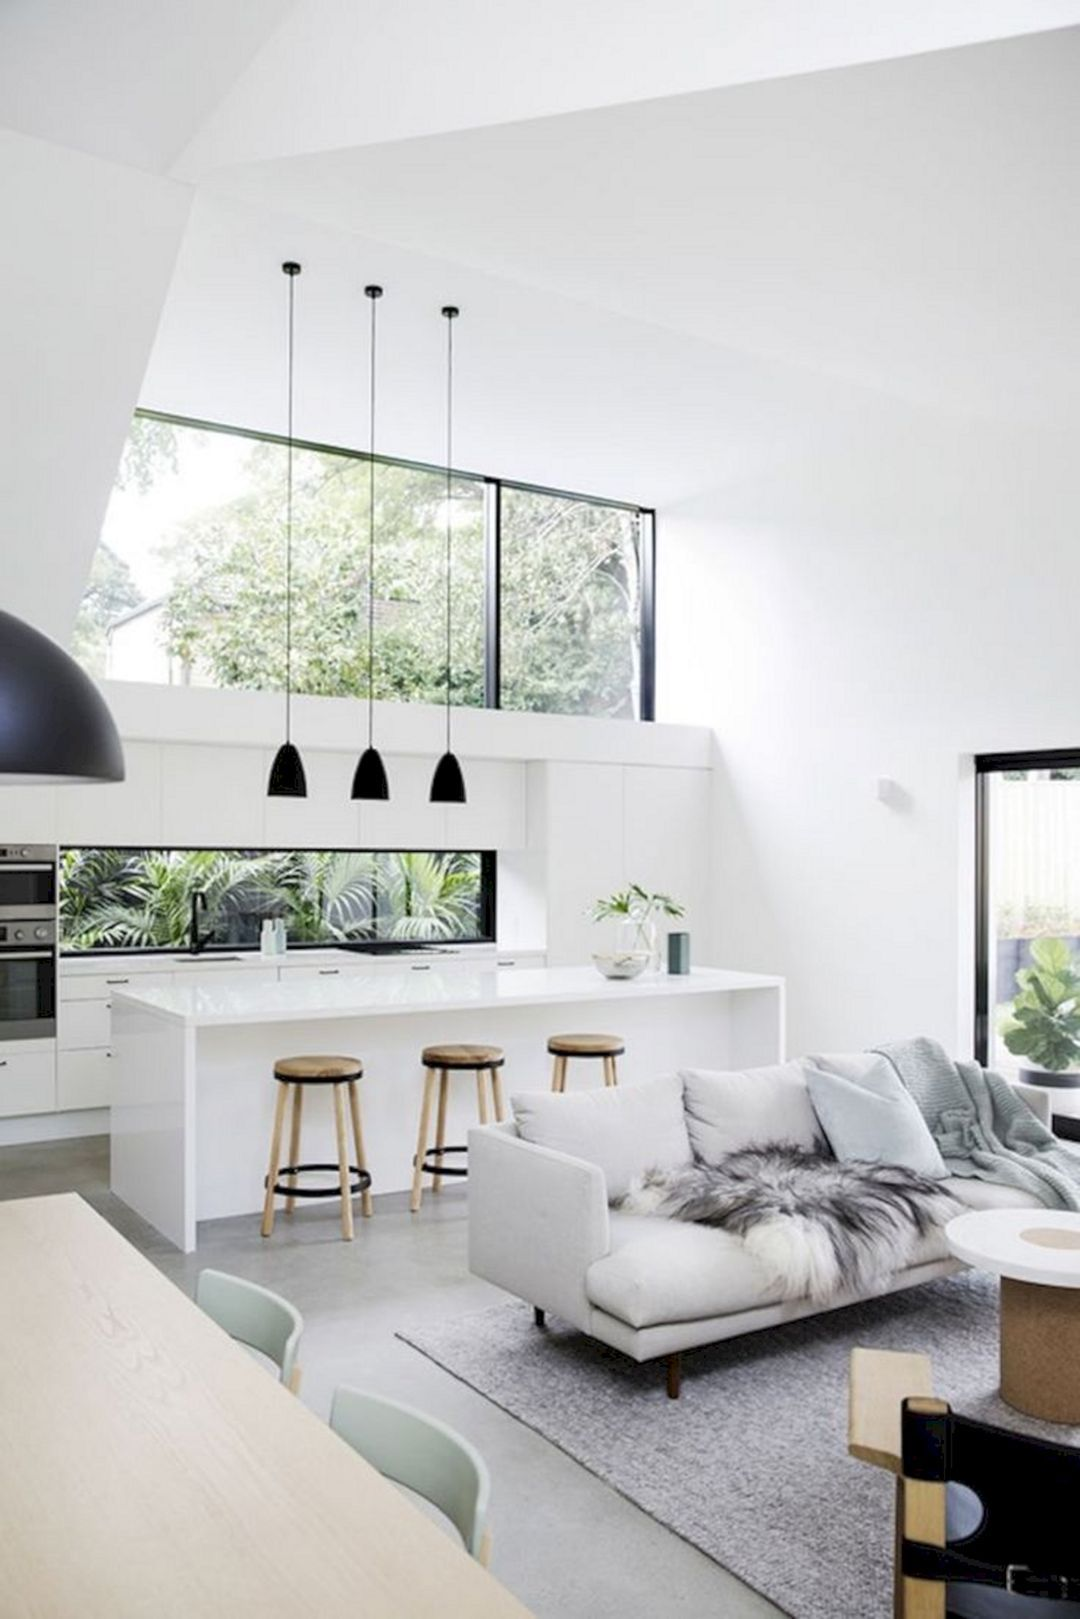 Top 10 Cozy And Simple Home Interior Ideas For Low Budget Trendy